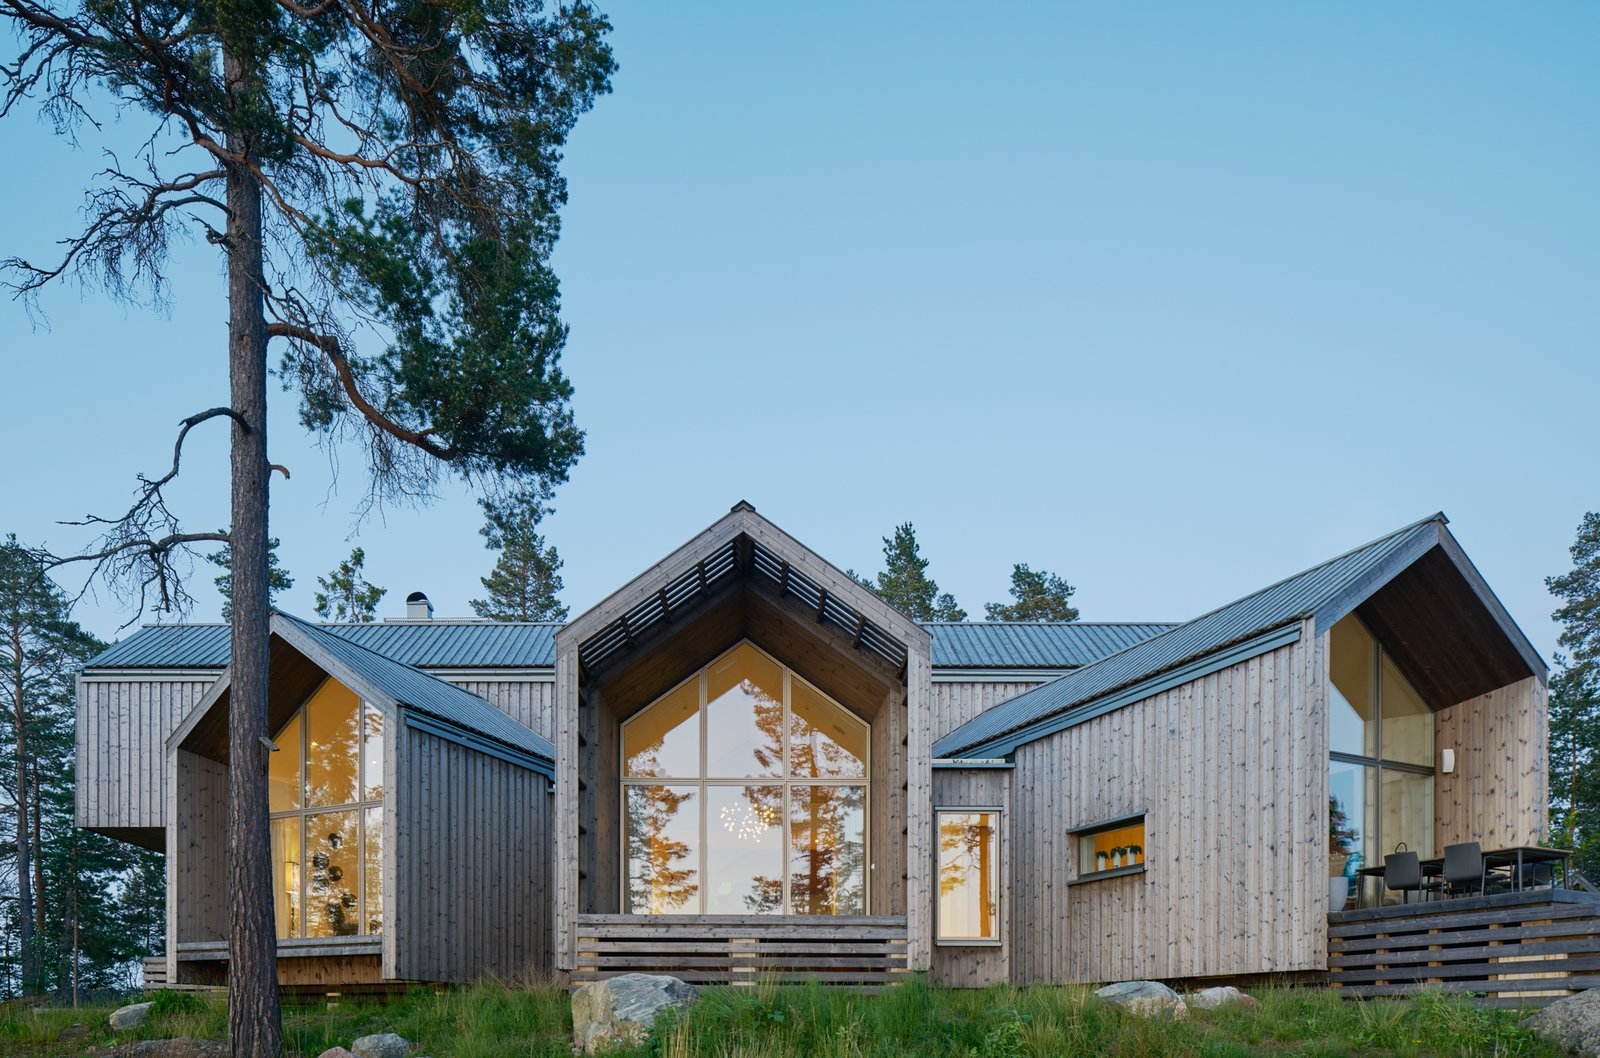 Exterior, House Building Type, Metal Roof Material, Wood Siding Material, Glass Siding Material, Gable RoofLine, and Cabin Building Type  Photos from A Swedish Family's Dreamy Villa Fans Out For Lakeside Views